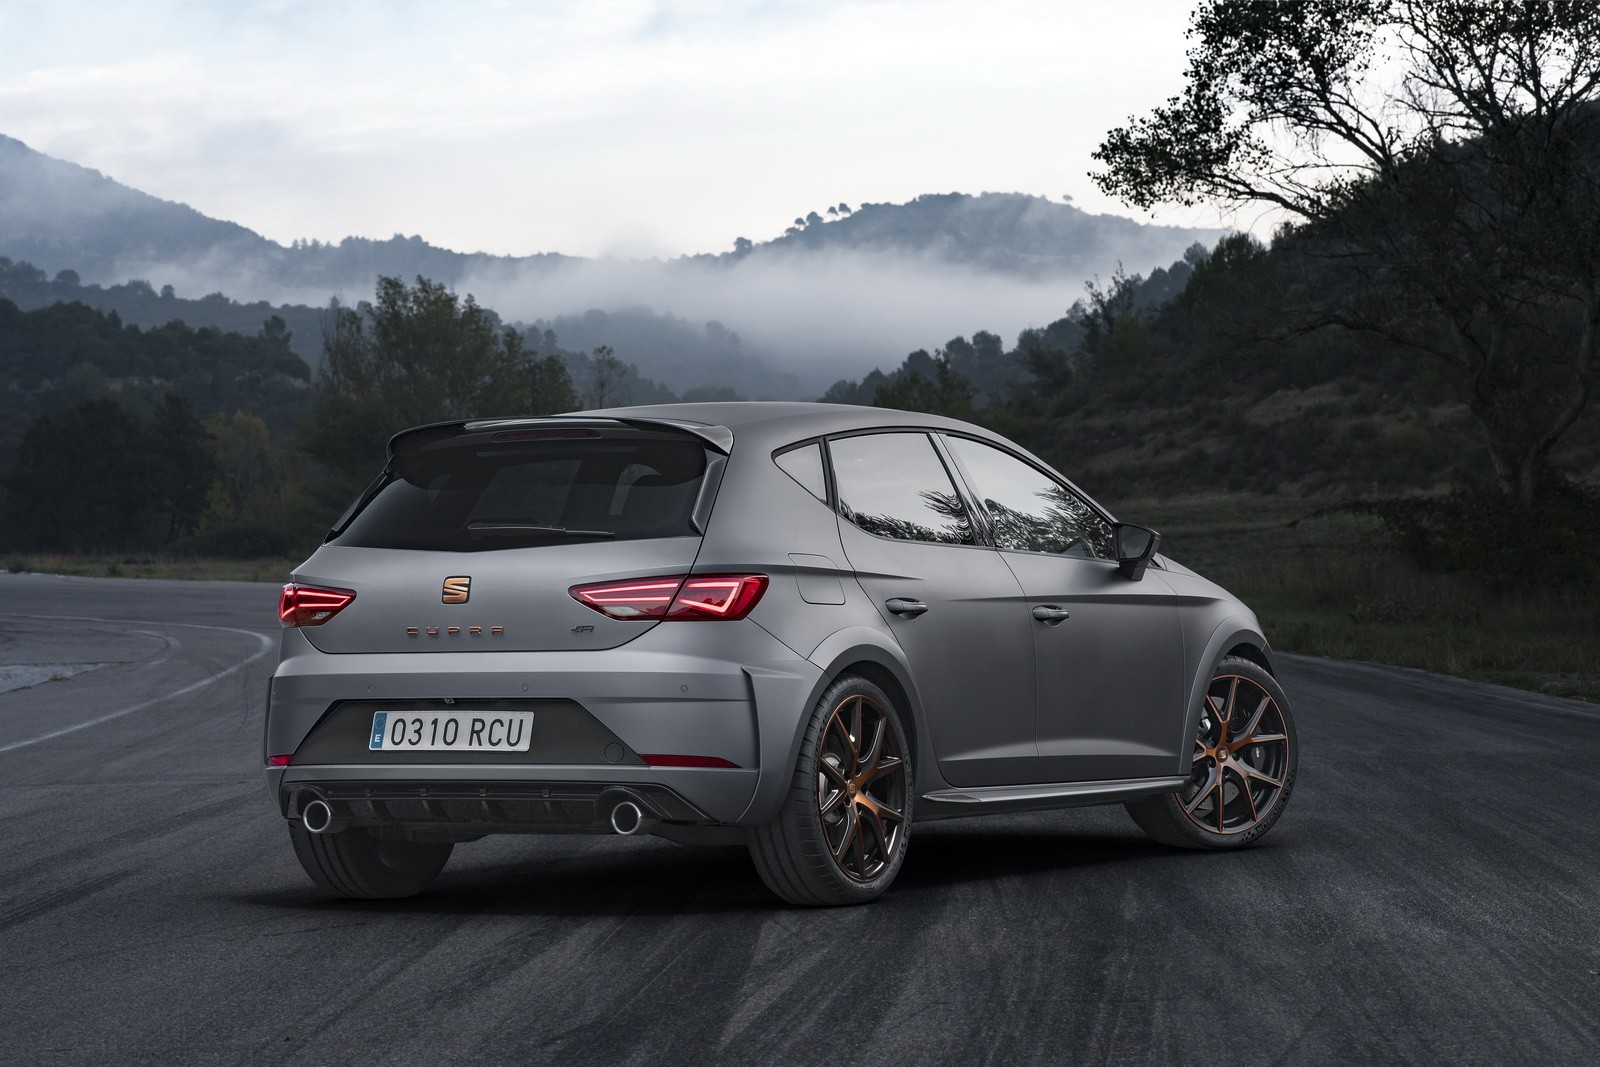 Next Seat Leon Cupra Getting 265 Hp Autoevolution